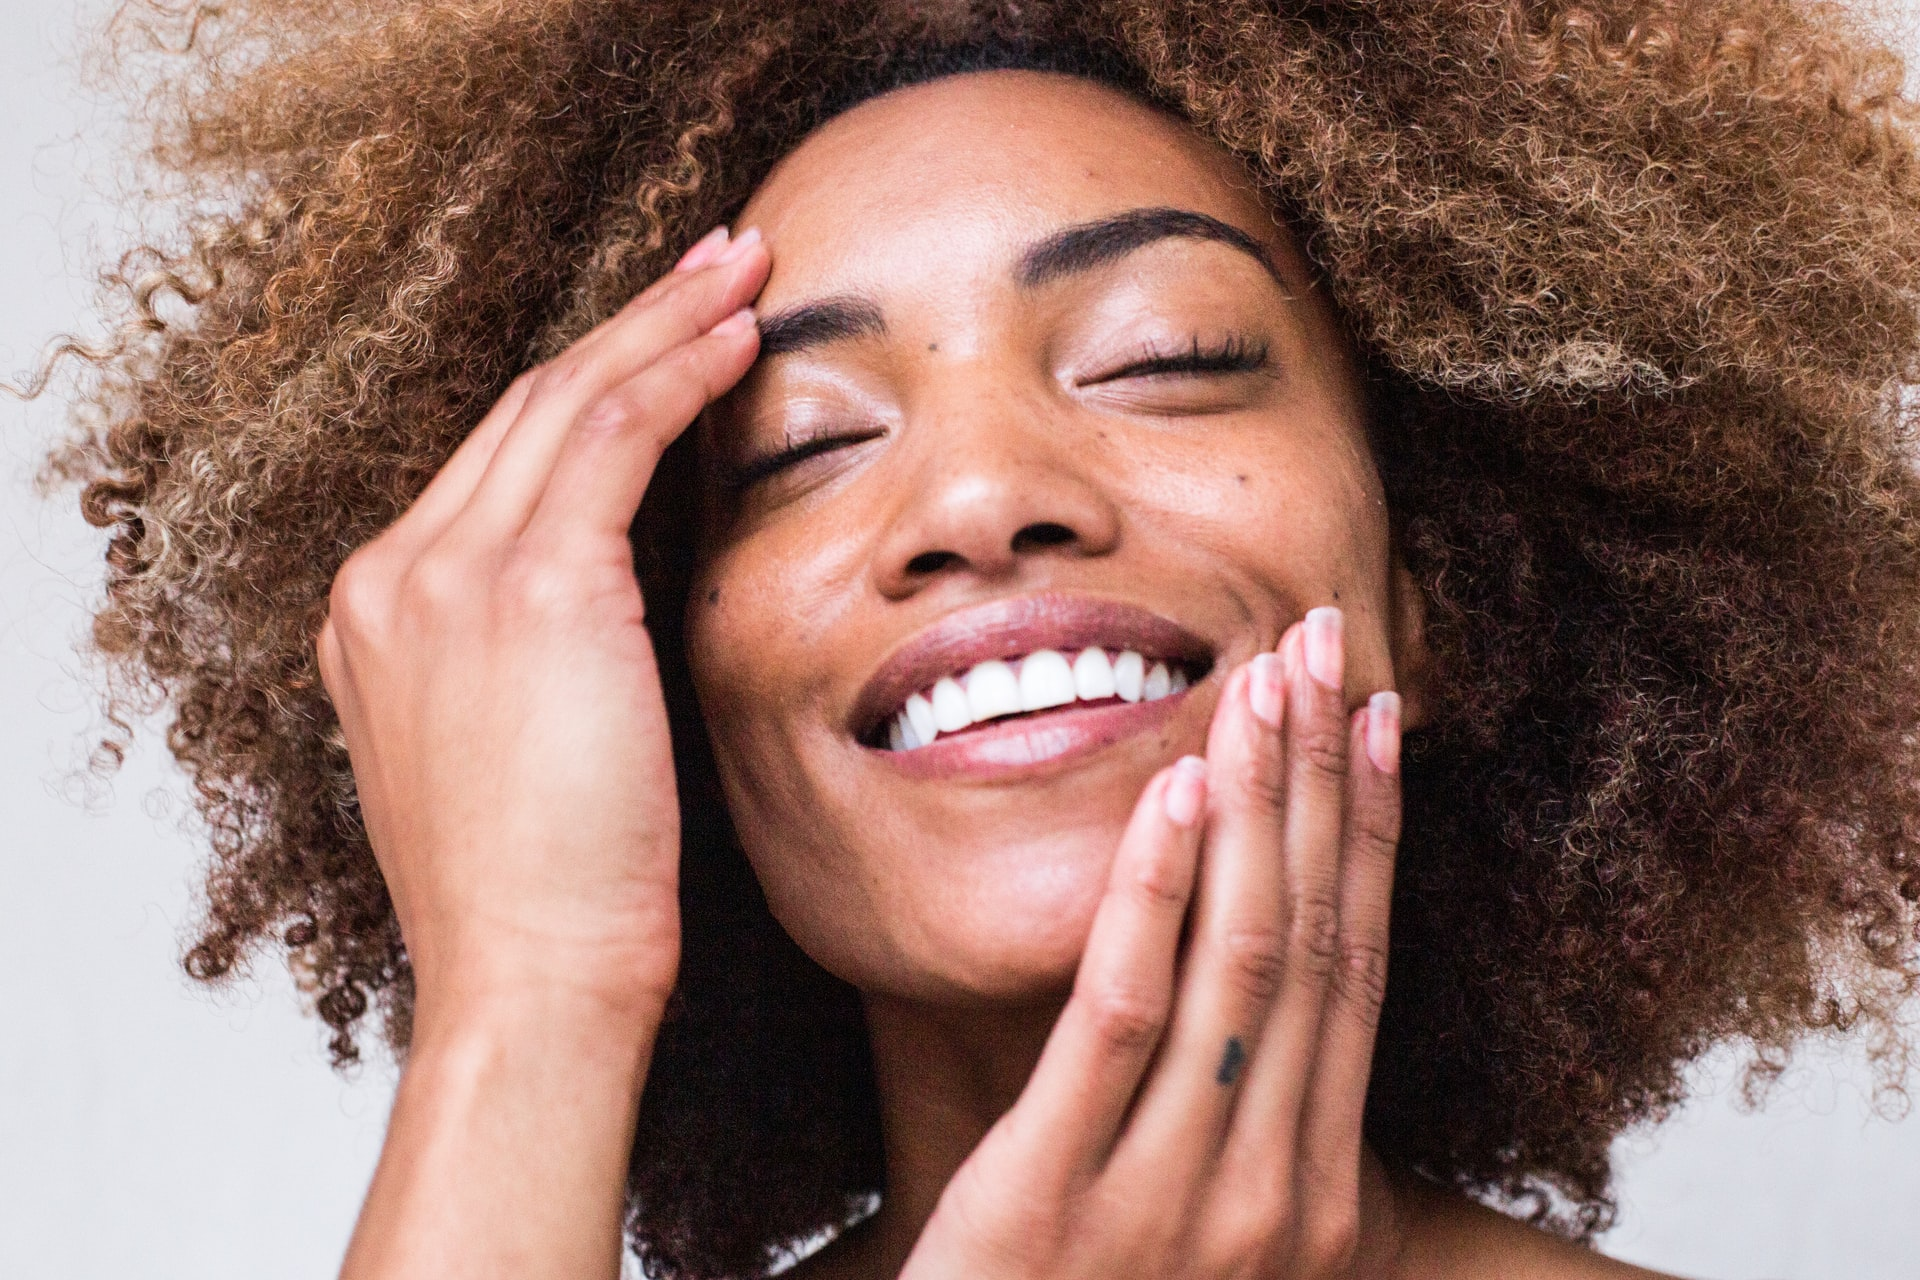 woman with afro smiling and touching face